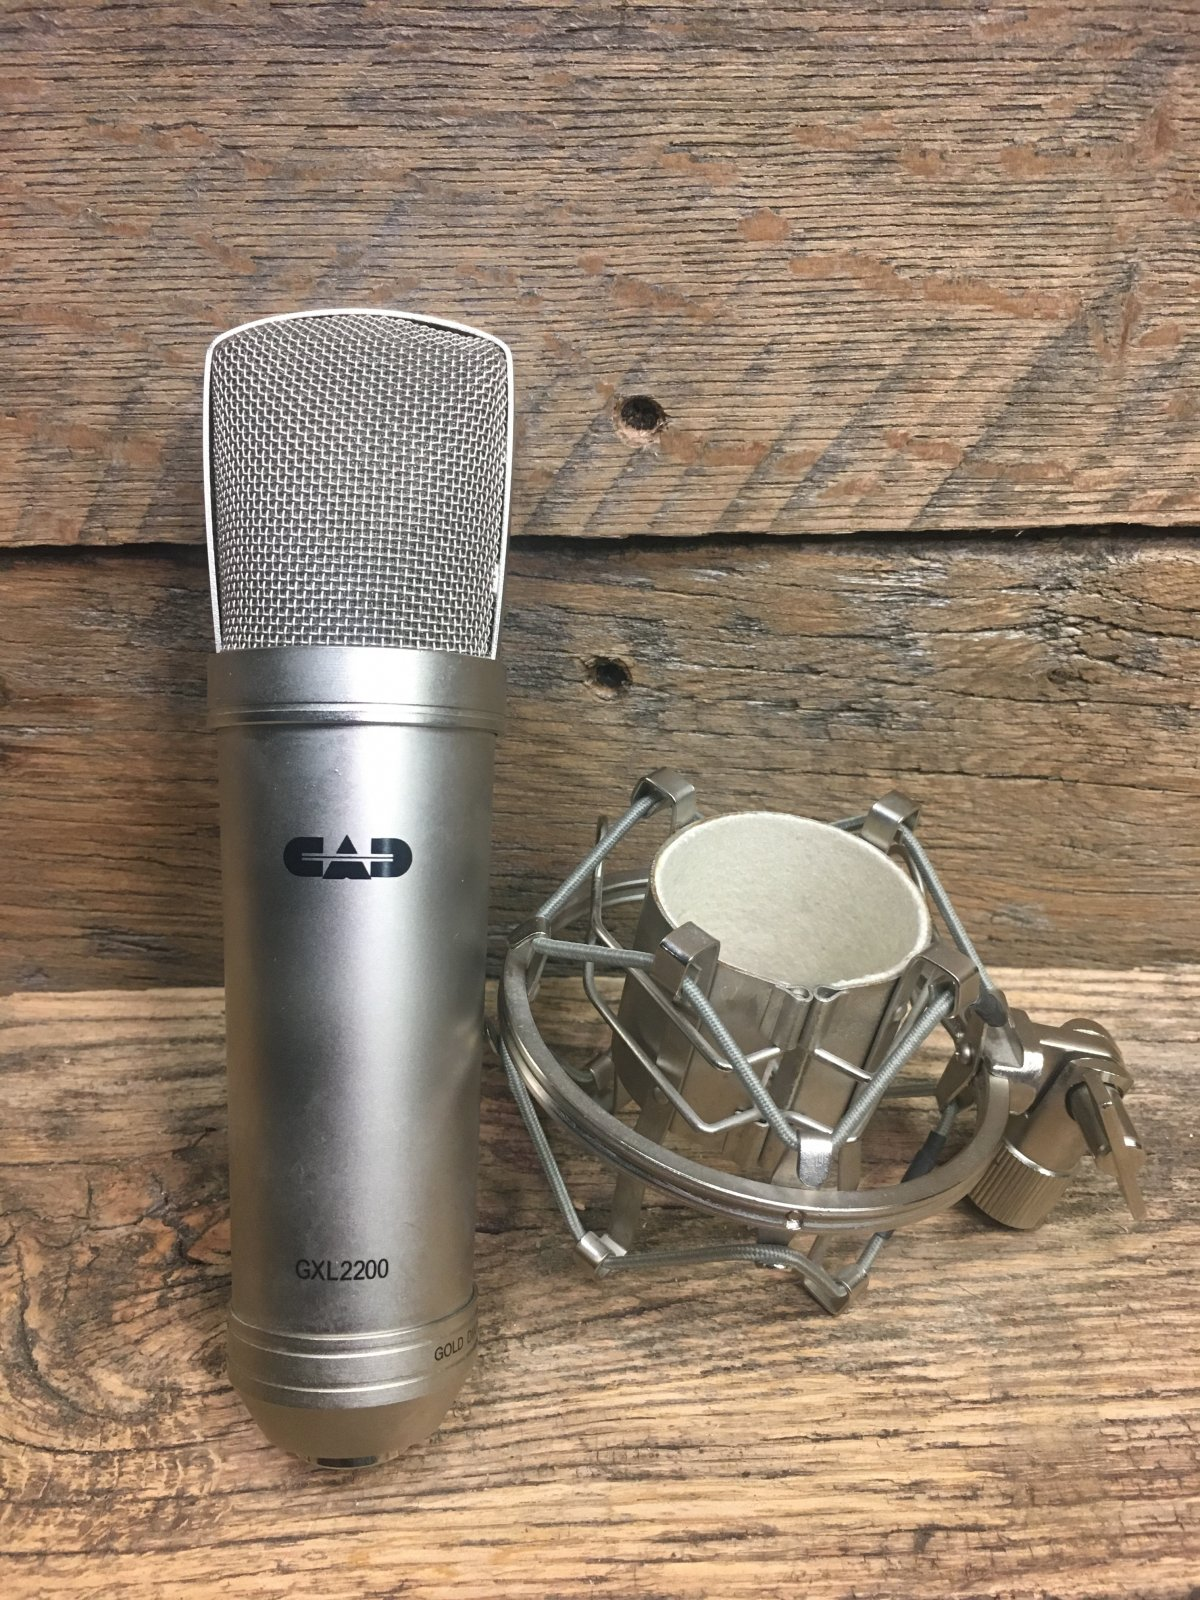 Used CAD GXL-2200 Microphone